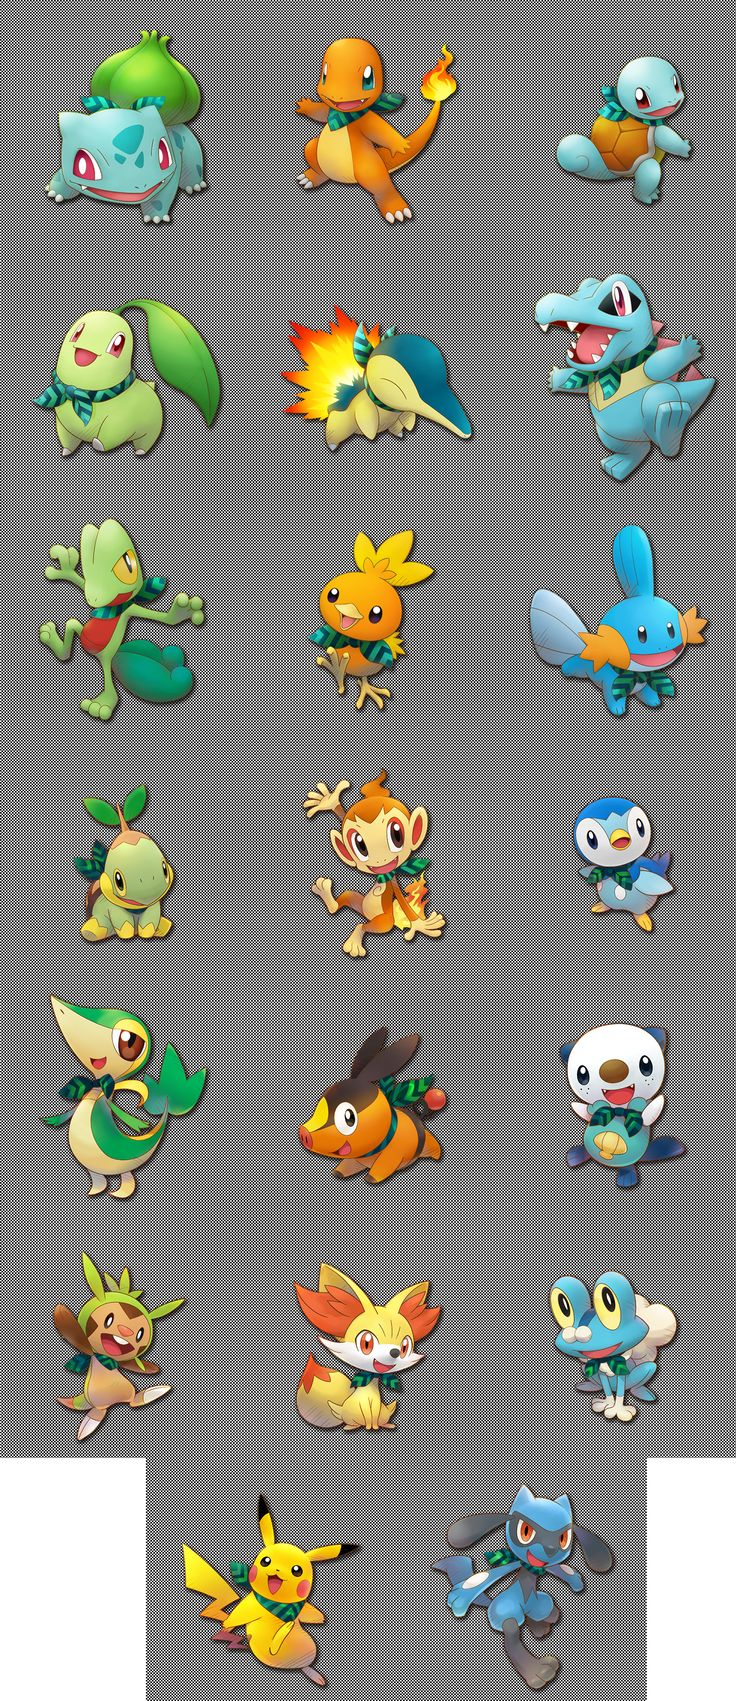 Pokémon Super Mystery Dungeon Starter Pokemon